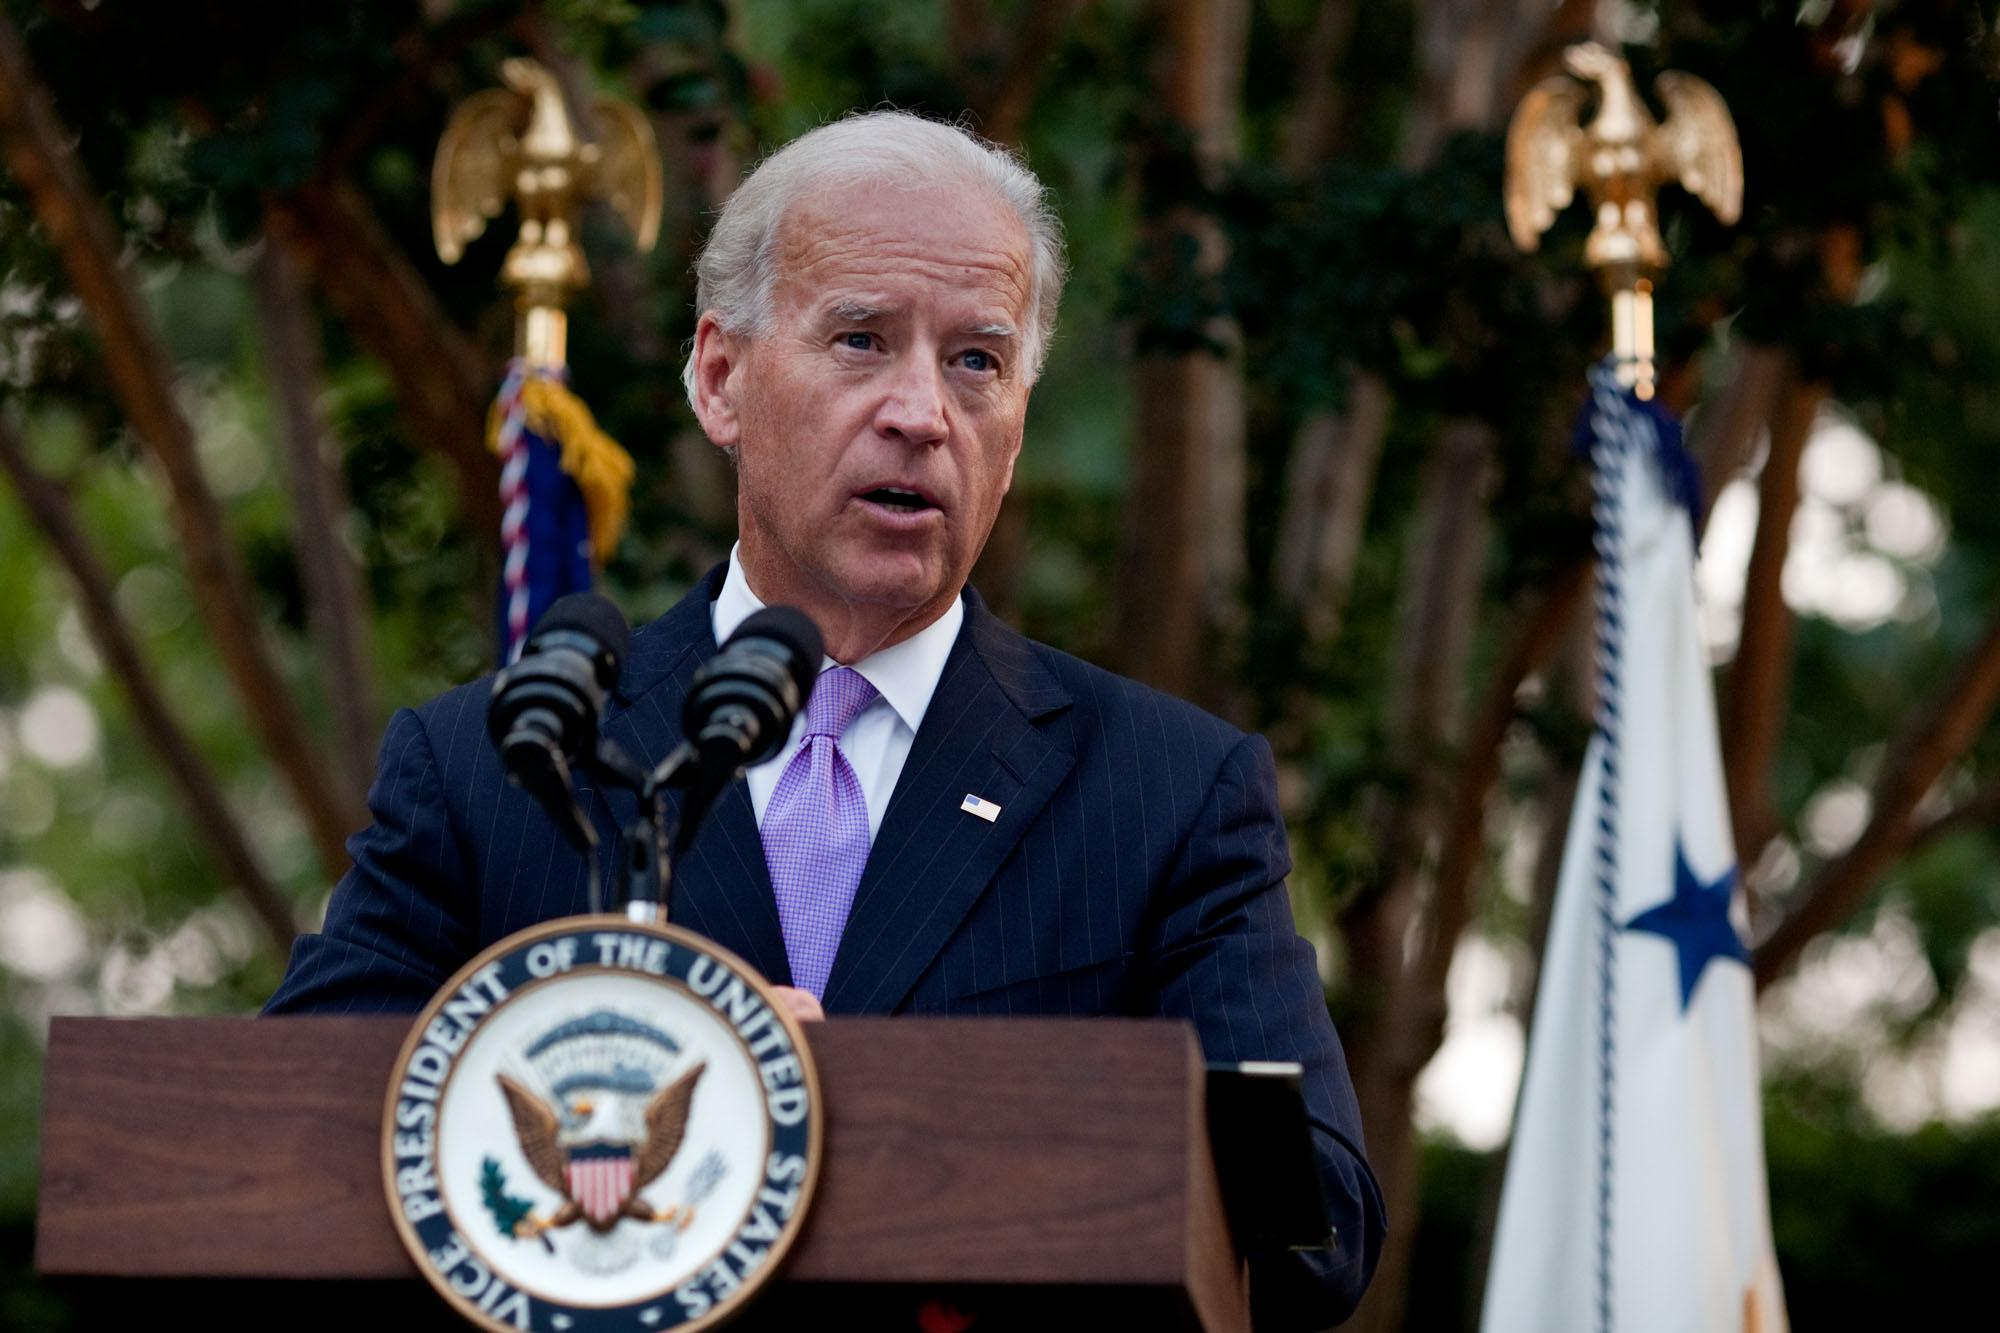 Vice President Joe Biden Speaks at Violence Against Women Event